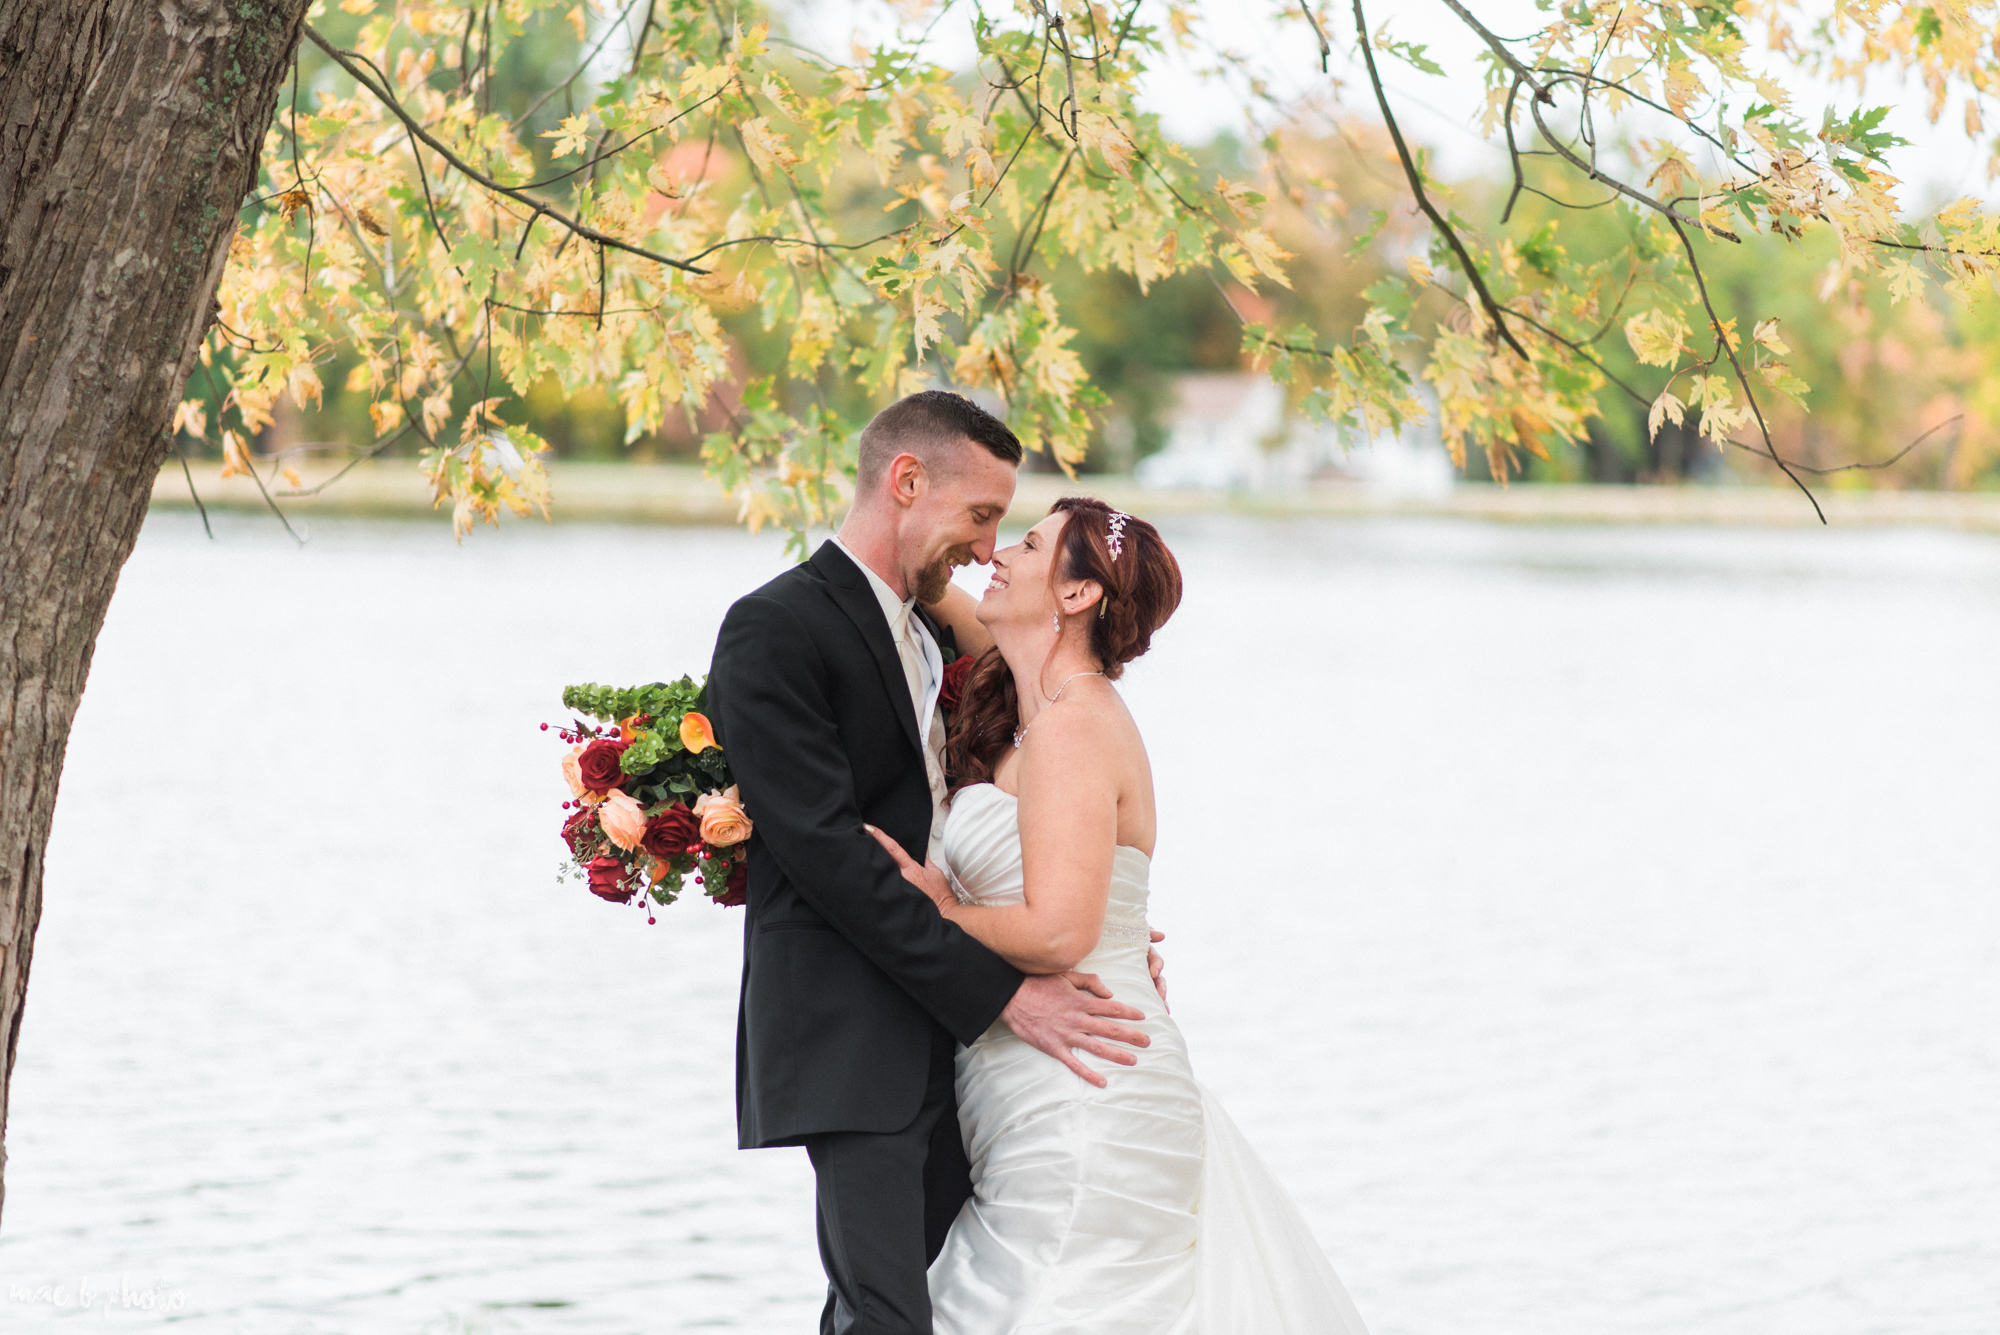 tracey and aaron's personal fall wedding at tiffany's banquet center in brookfield ohio-78.jpg